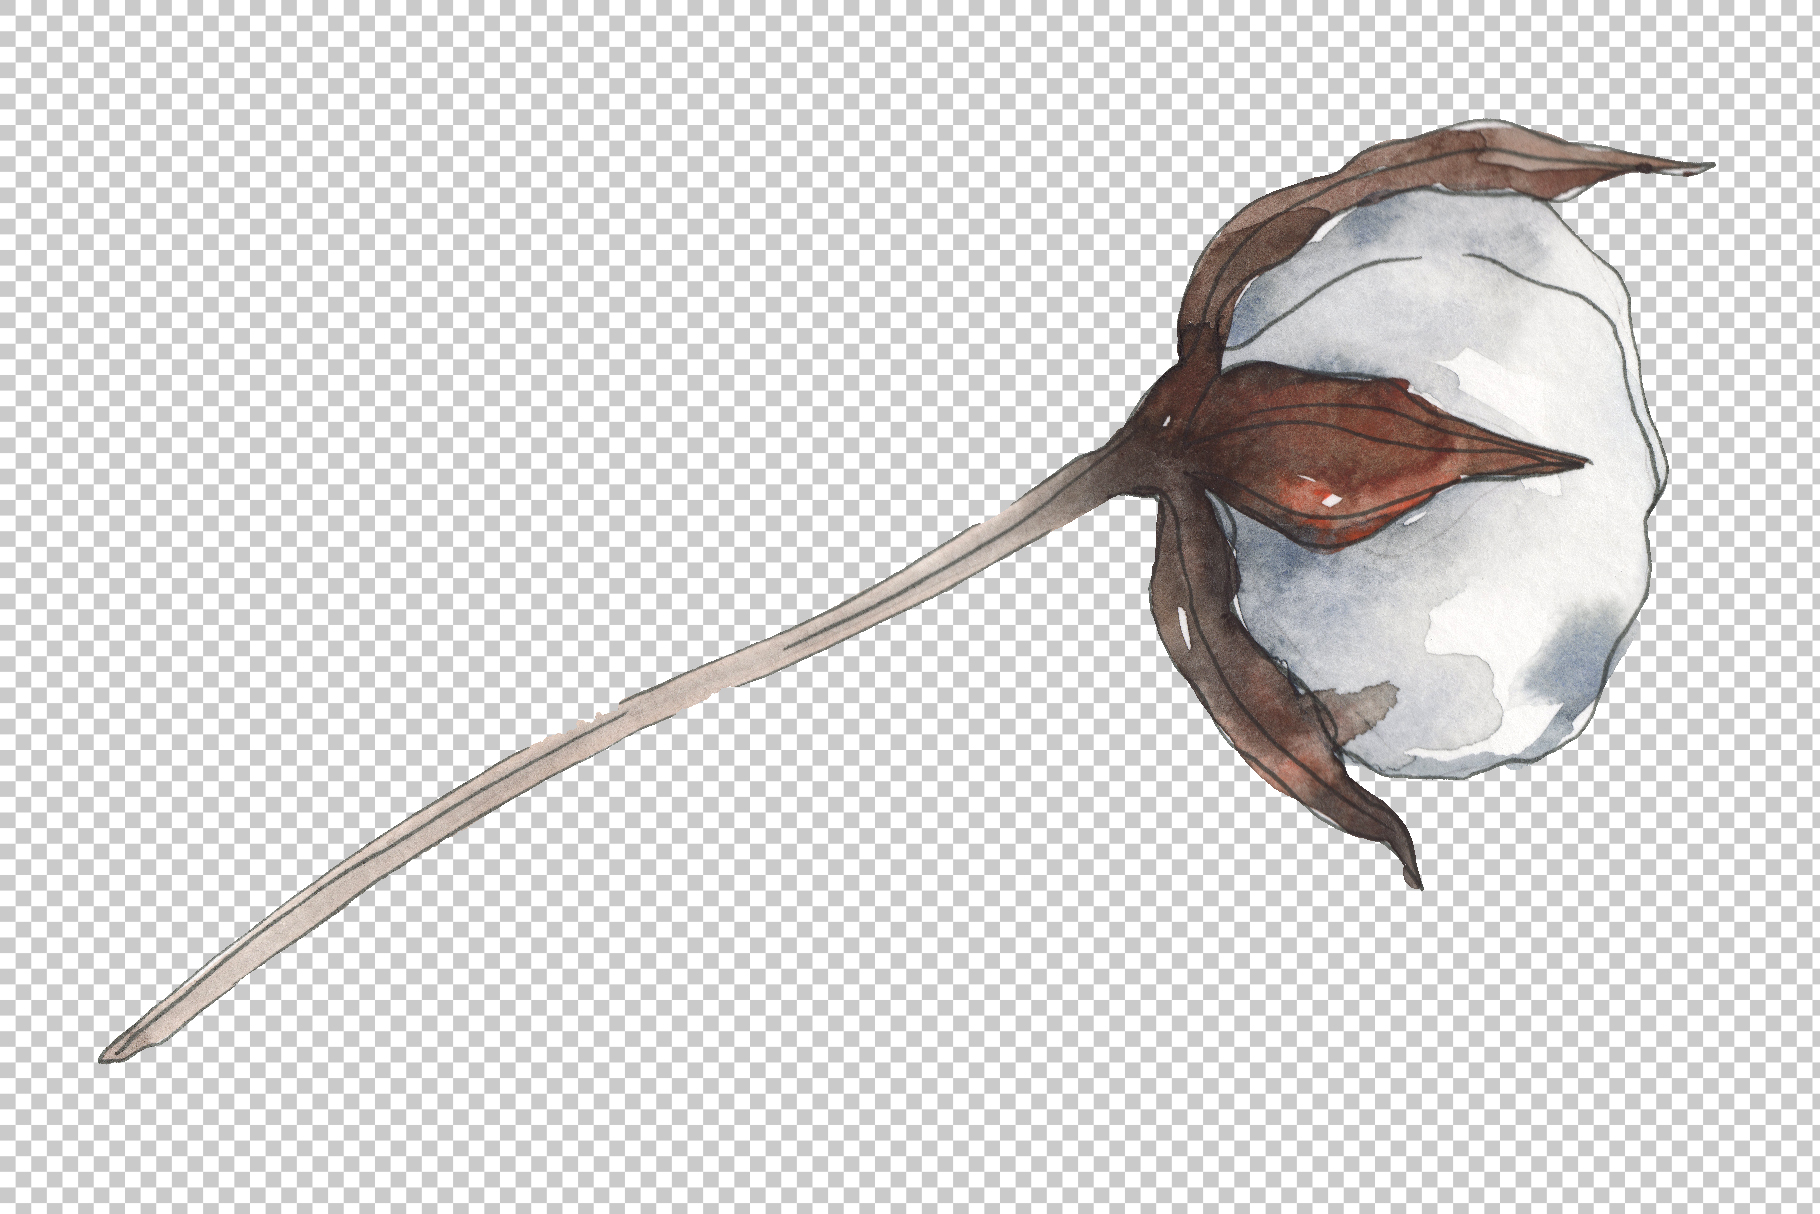 Cotton 2 Watercolor png example image 2